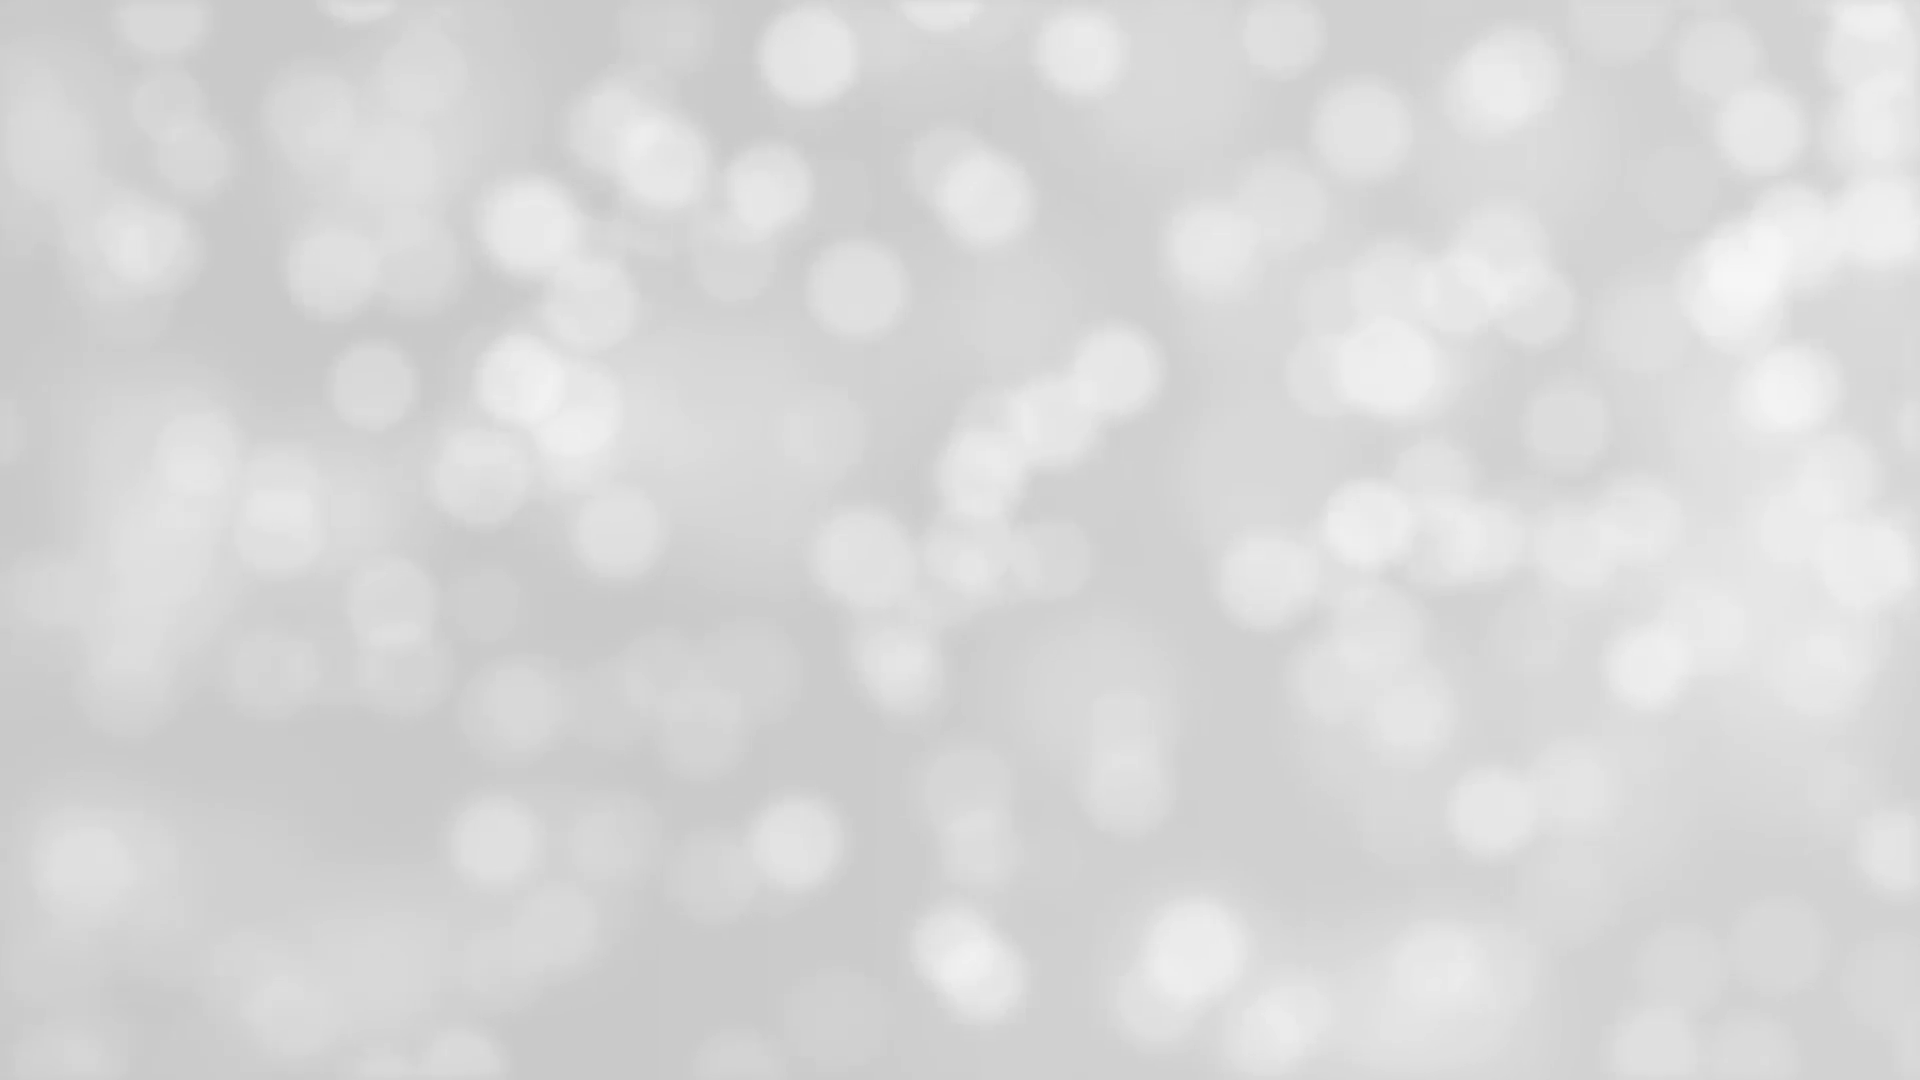 White Sparkle Png - White Sparkle Png (+) - Free Download   fourjay.org